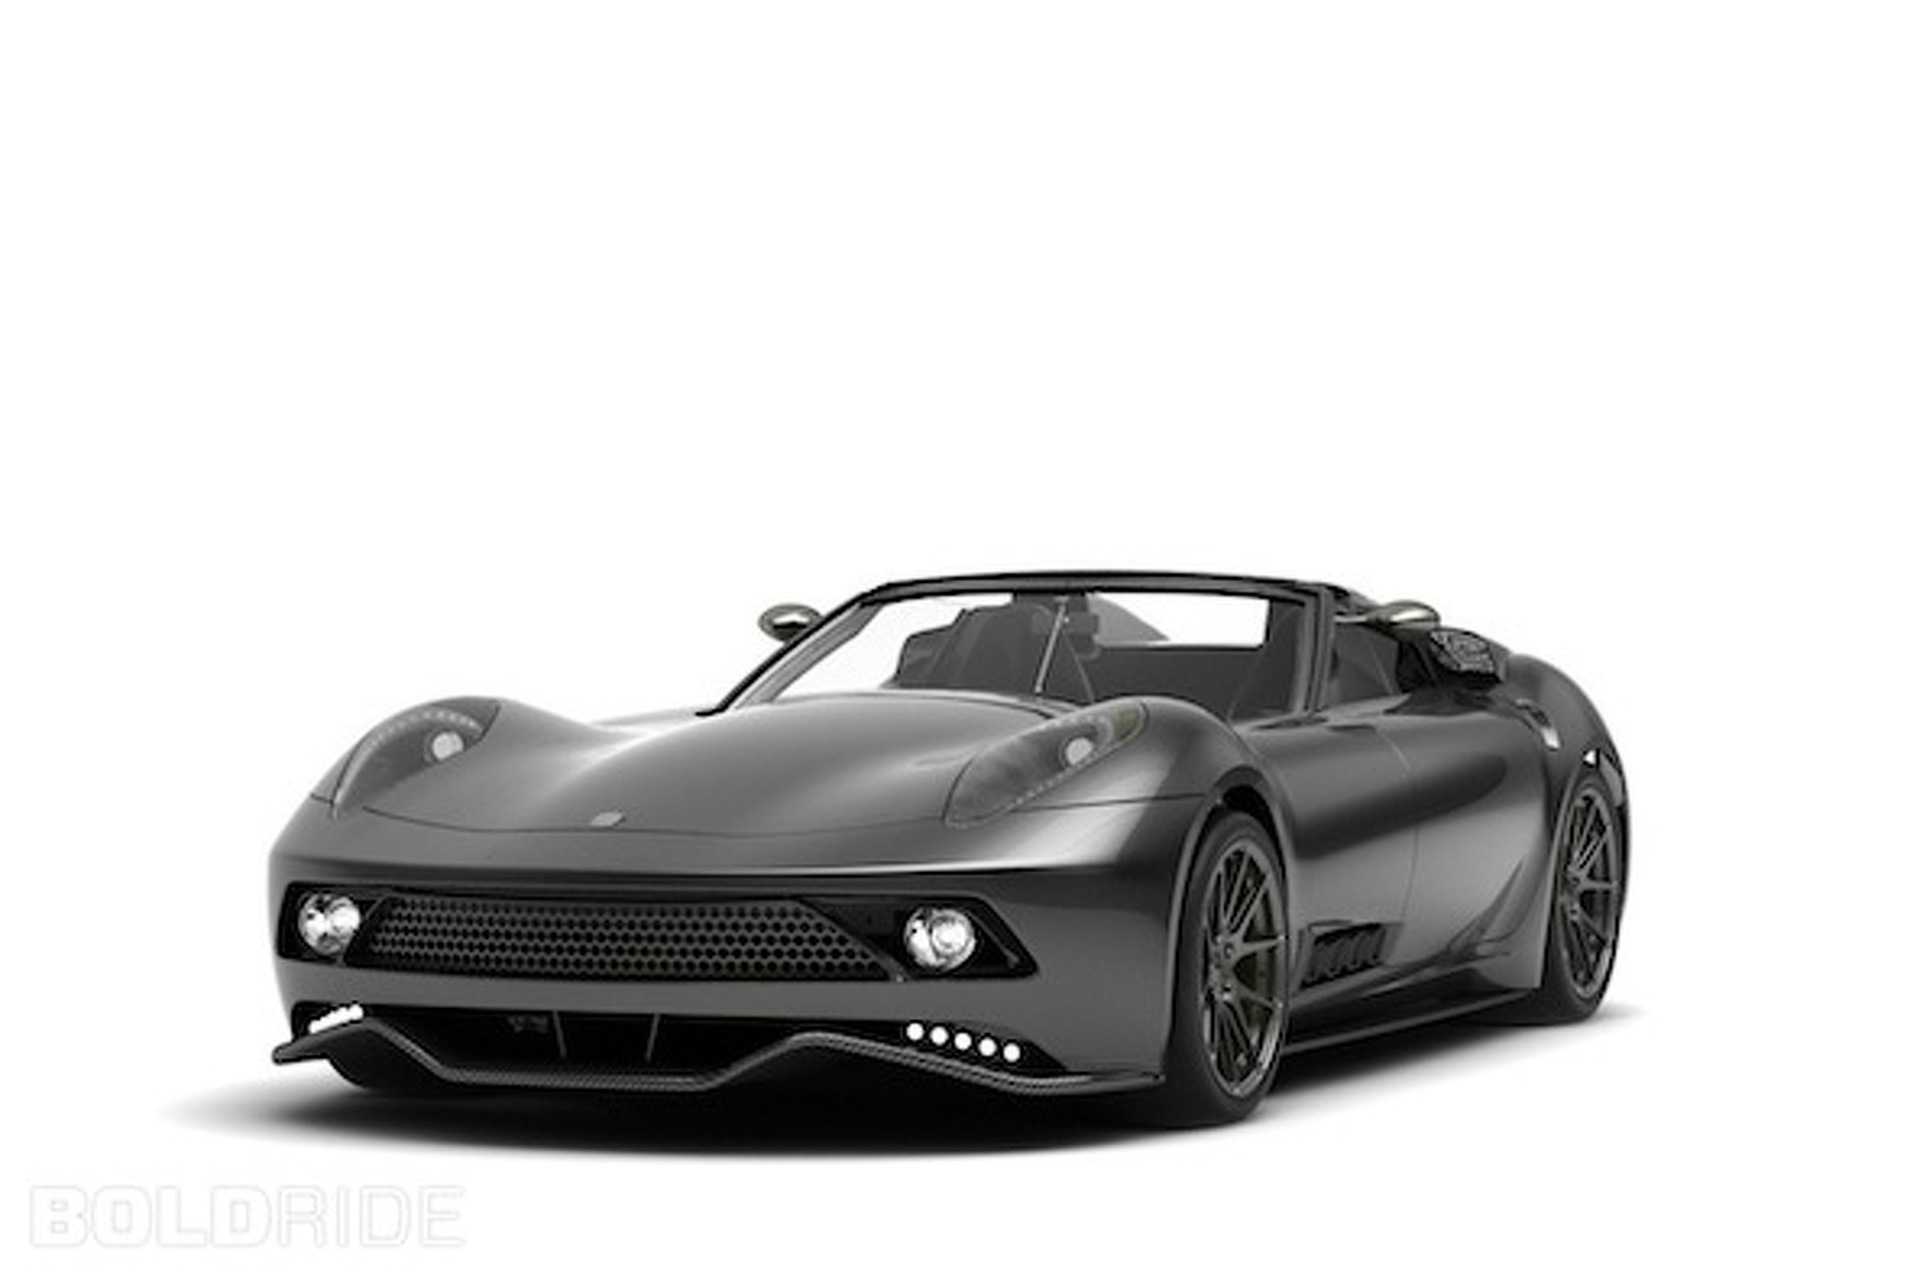 Lucra Readying All-New Sportscar